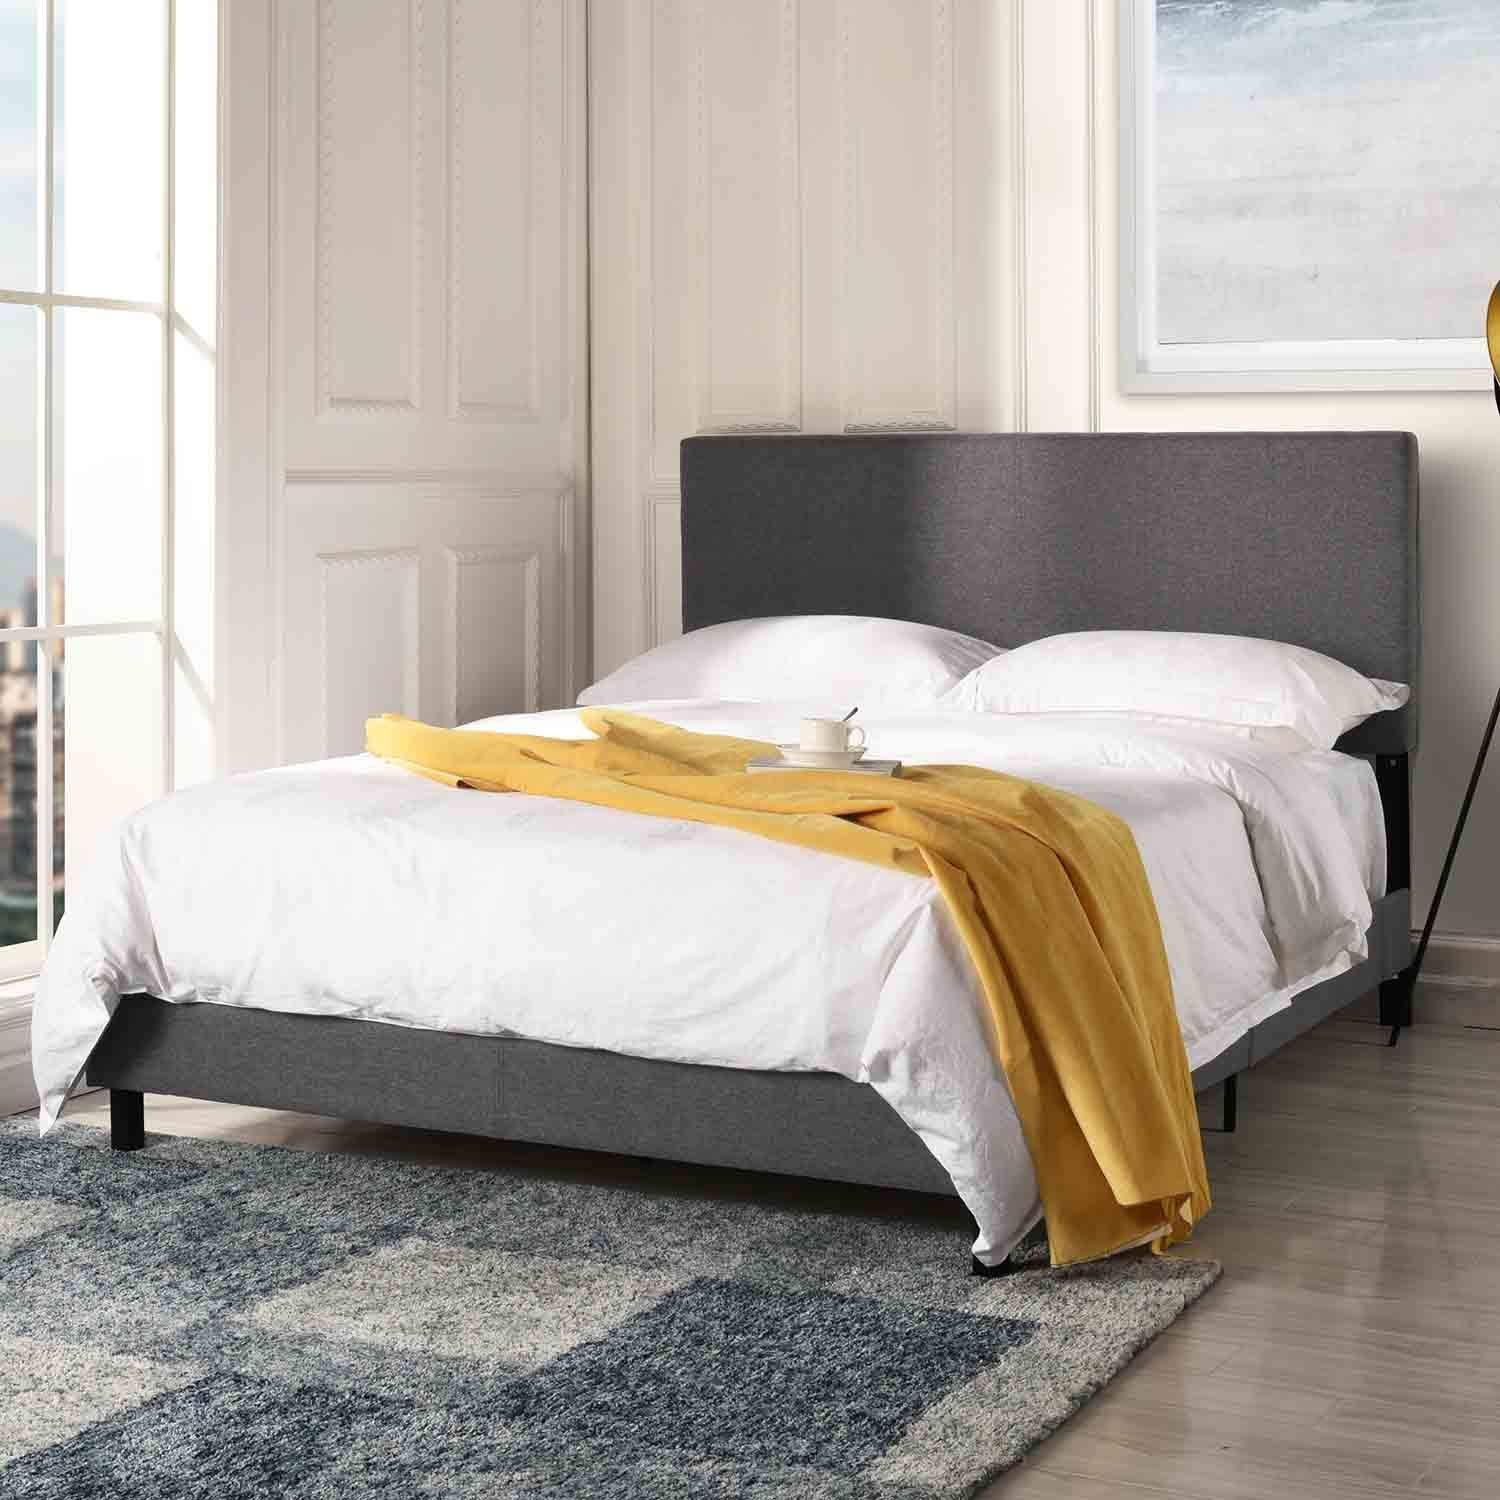 Upholstered Platform Bed Stitched Panel Headboard Bed